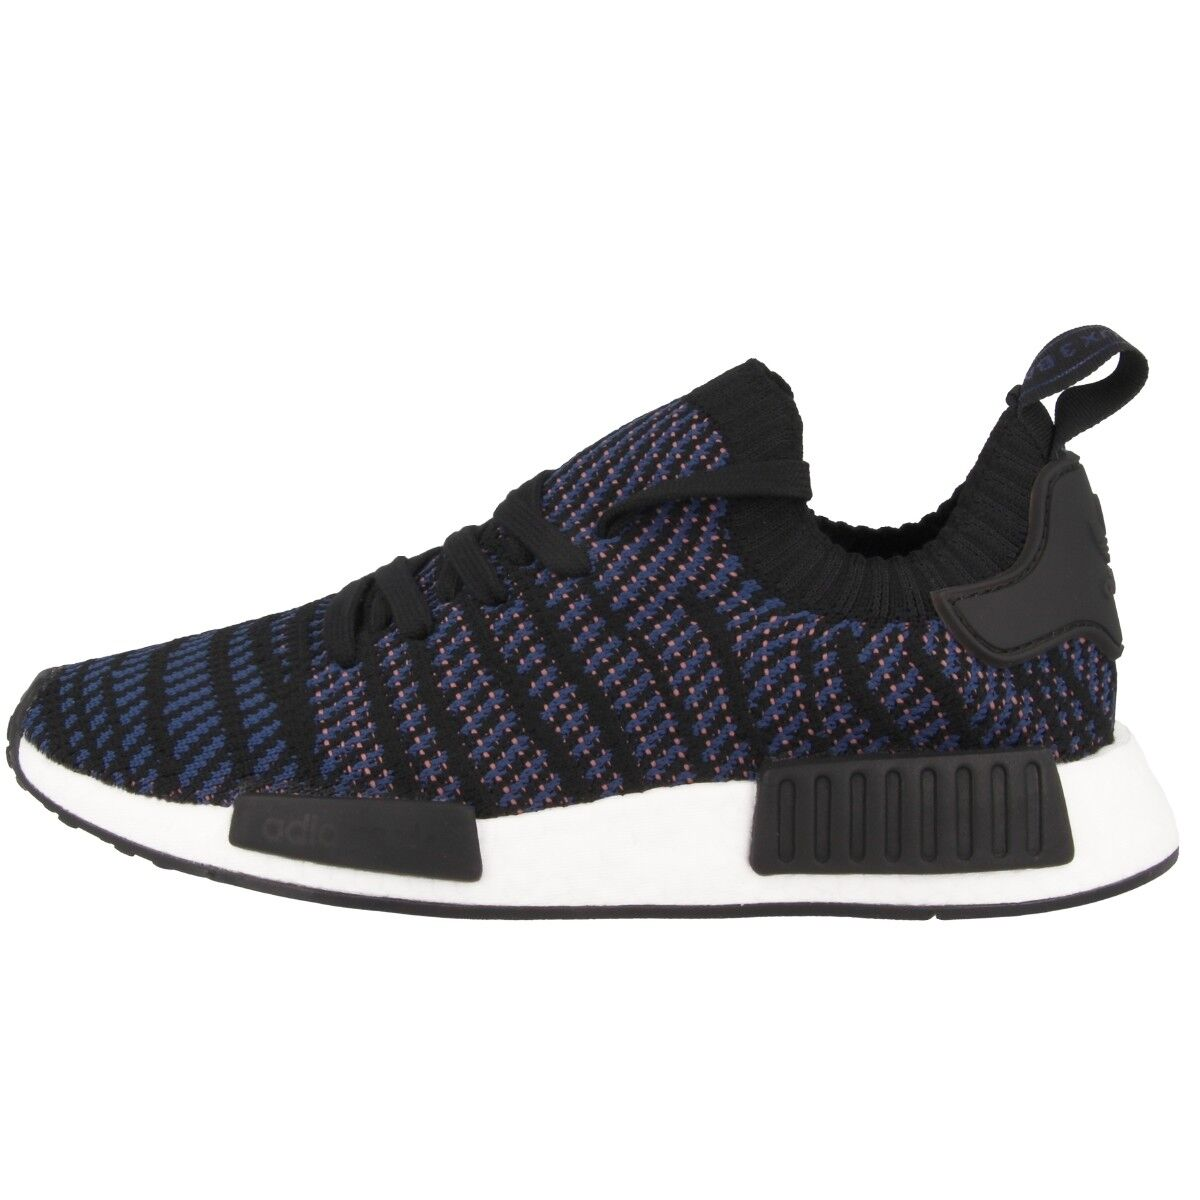 Adidas Nmd R1 Stlt Pk Primeknit shoes Women's Sneakers Core Black Ac8326